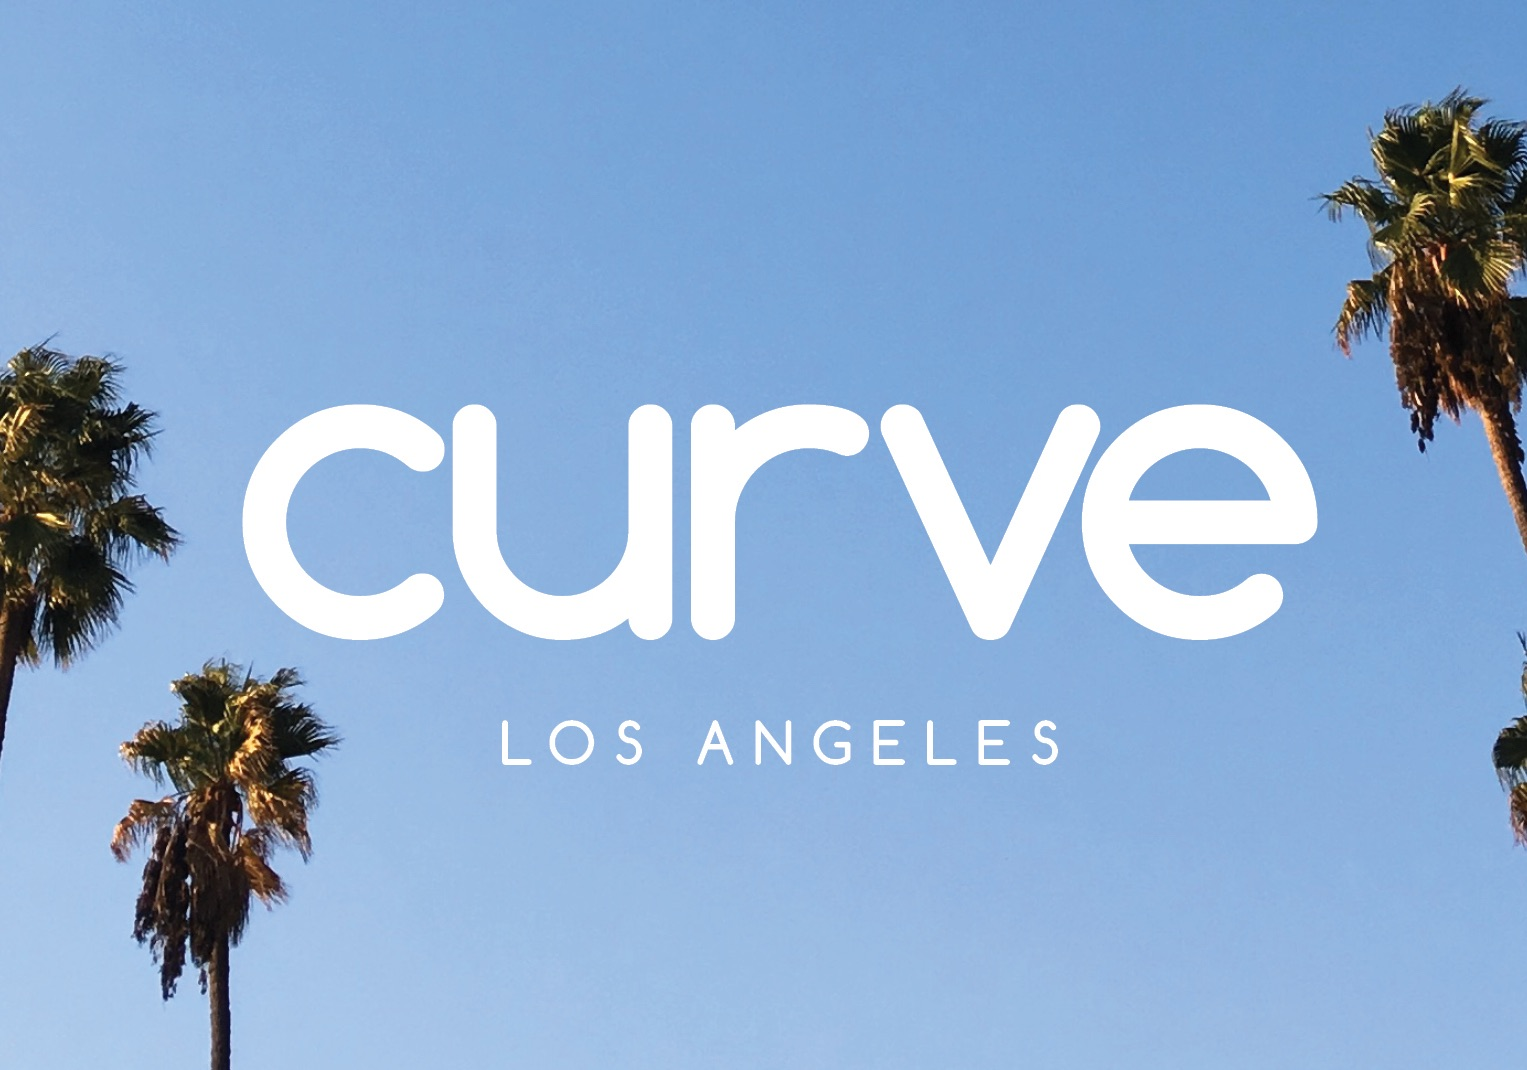 Curve Los Angeles,  Intimates Apparel Tradeshow Feb 23-24